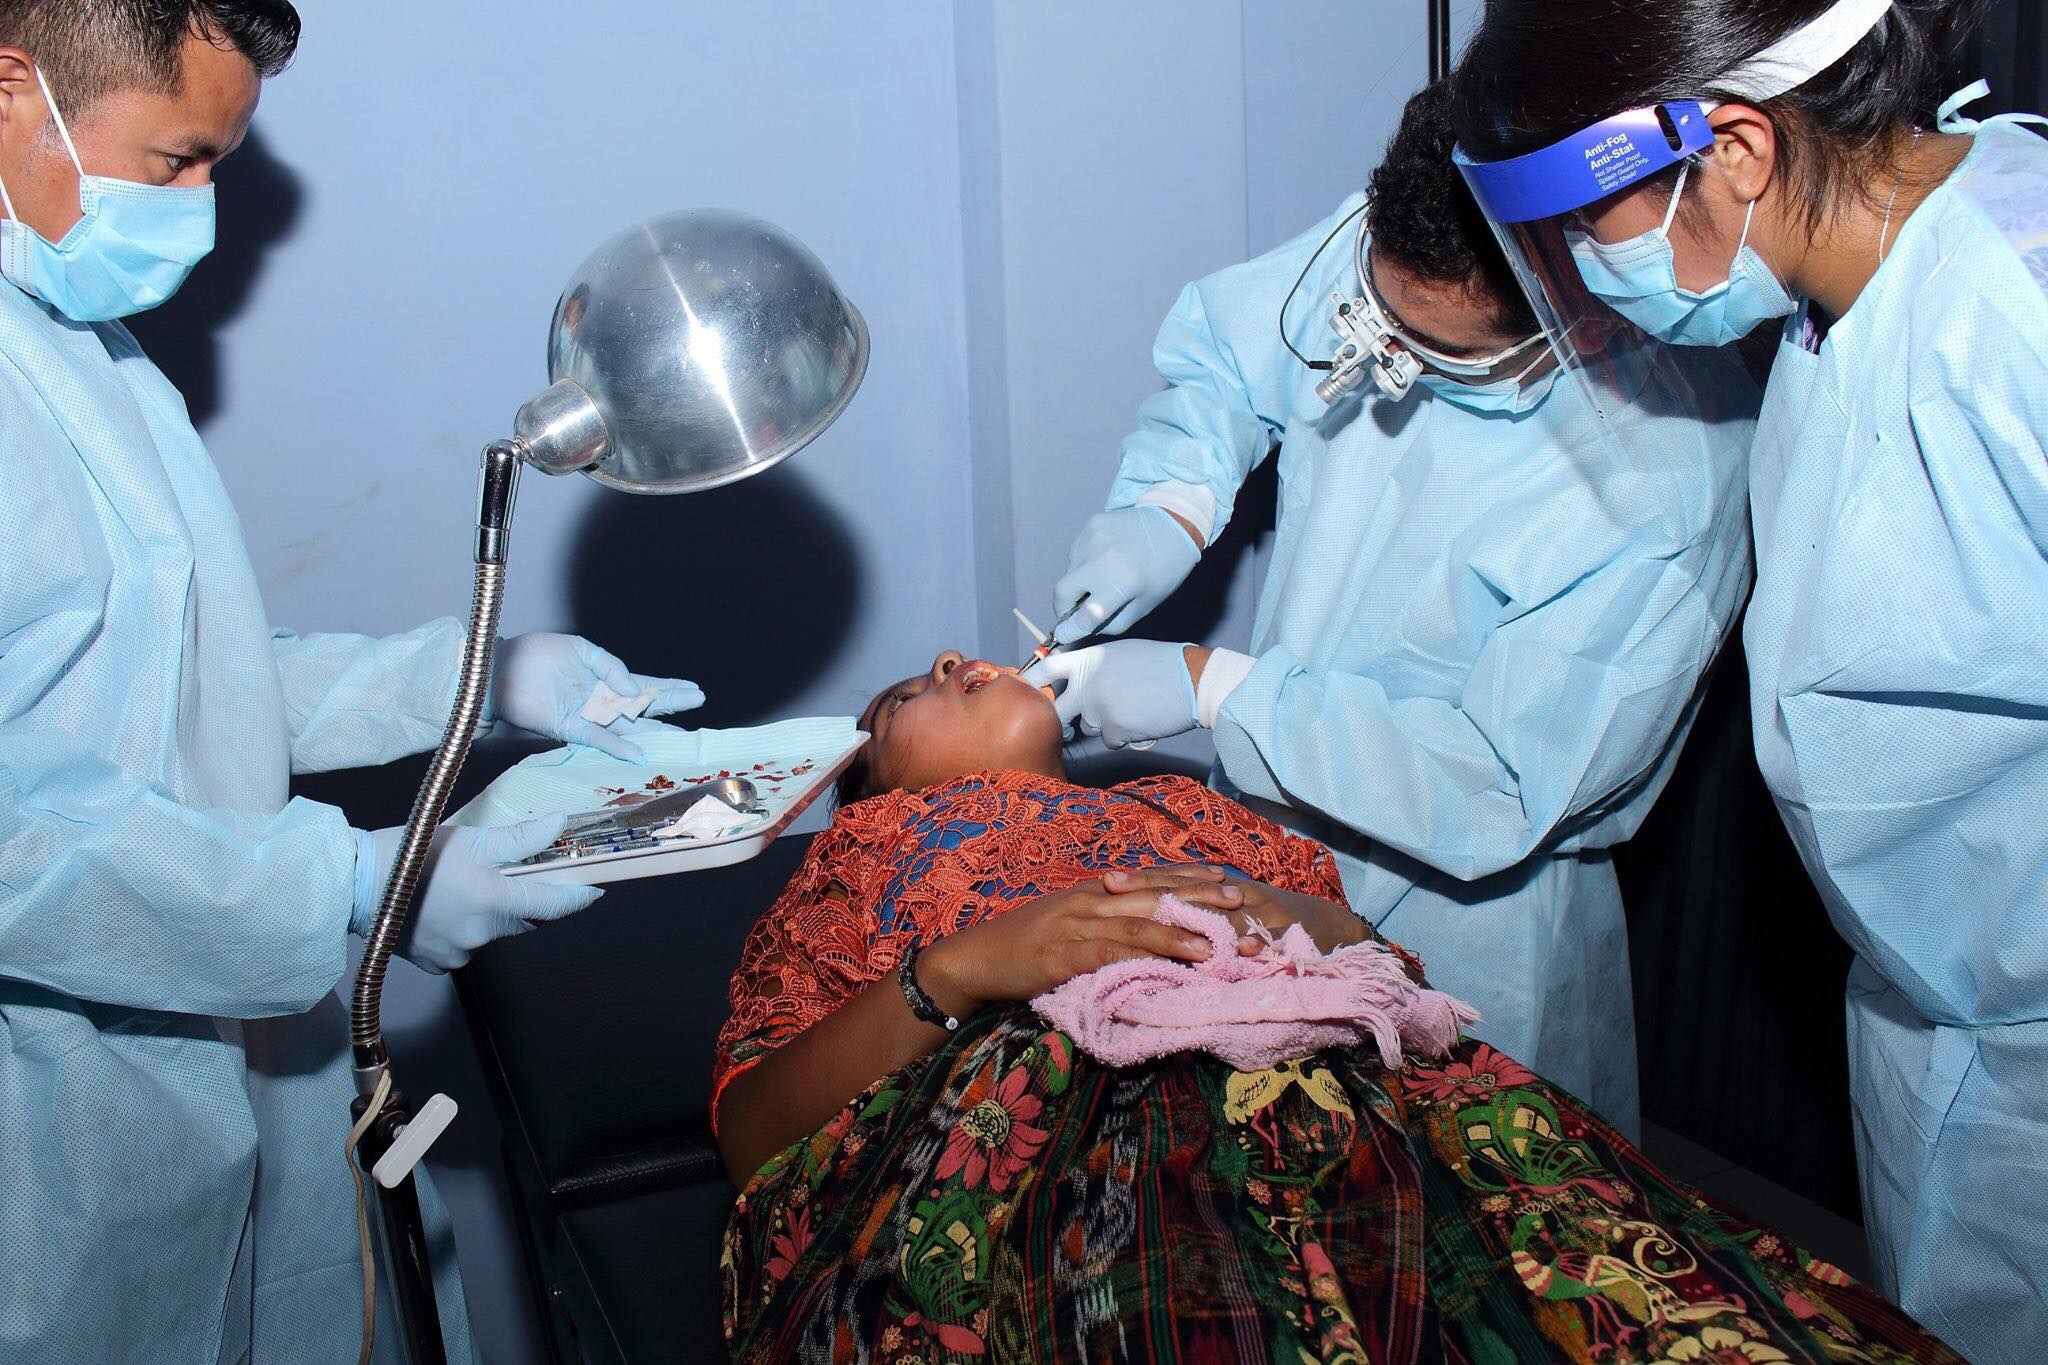 The Medical and Dental part of the Project was taking place at the same time.